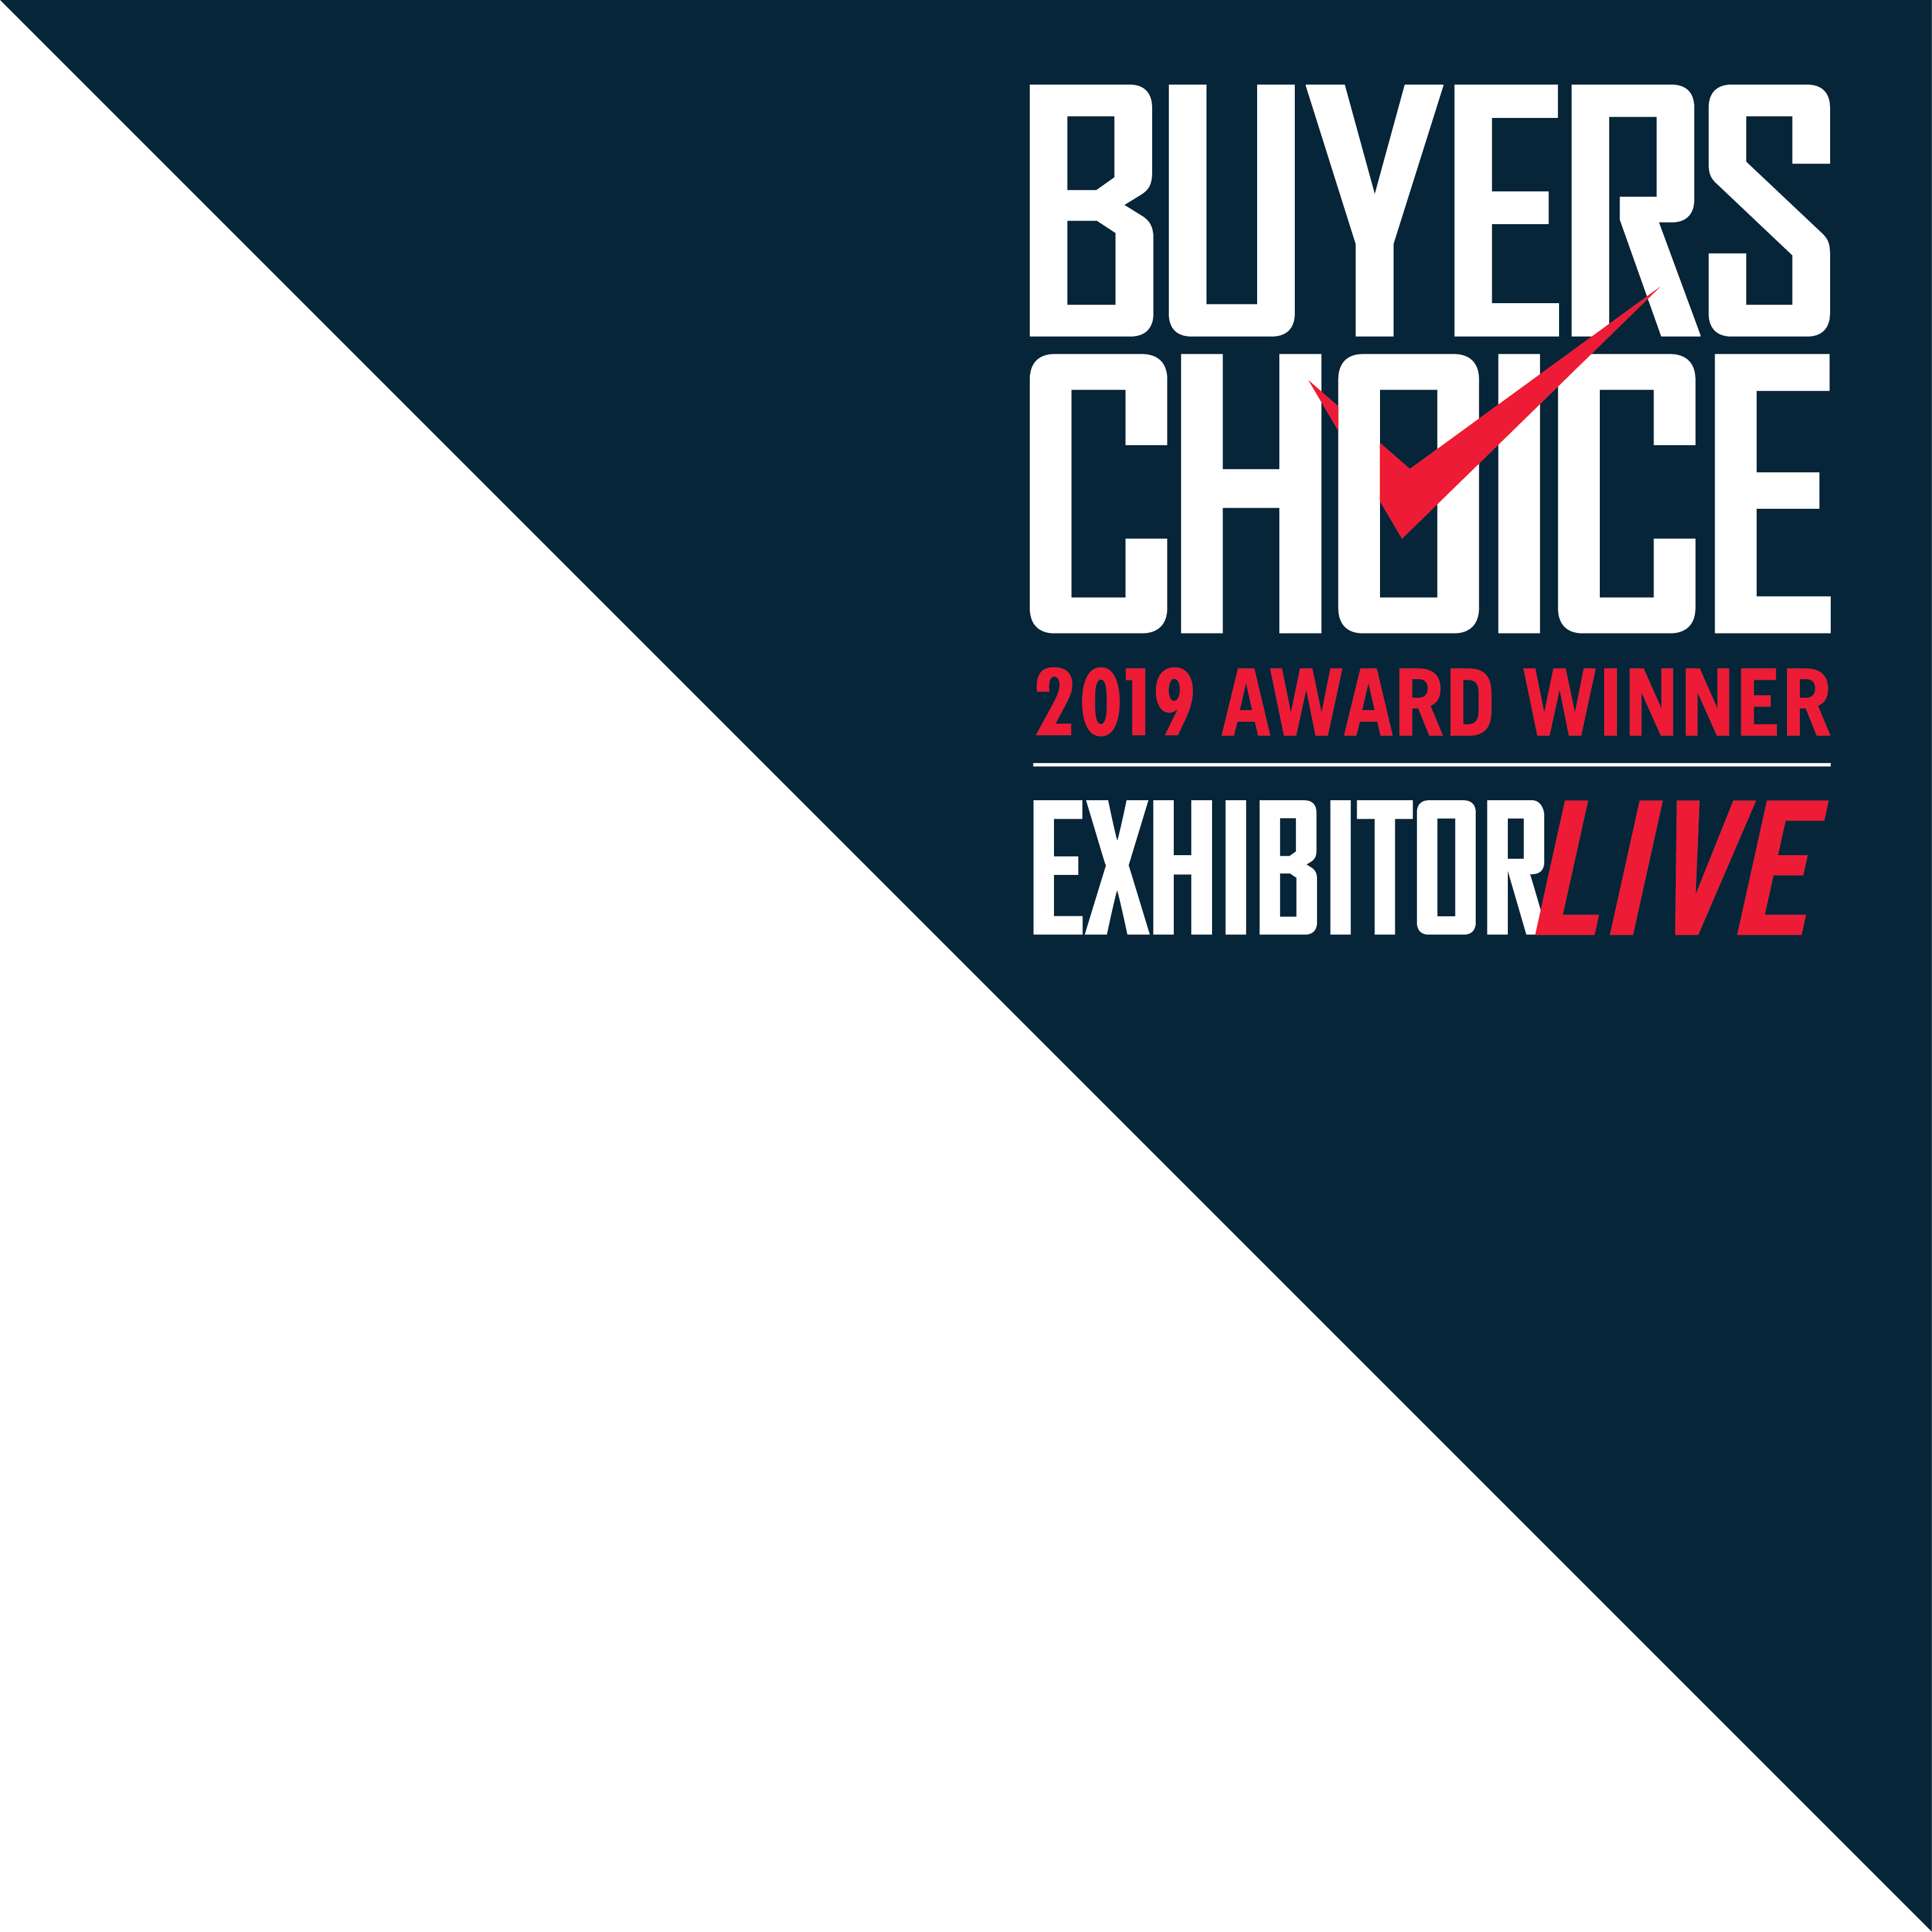 Buyers Choice 2019